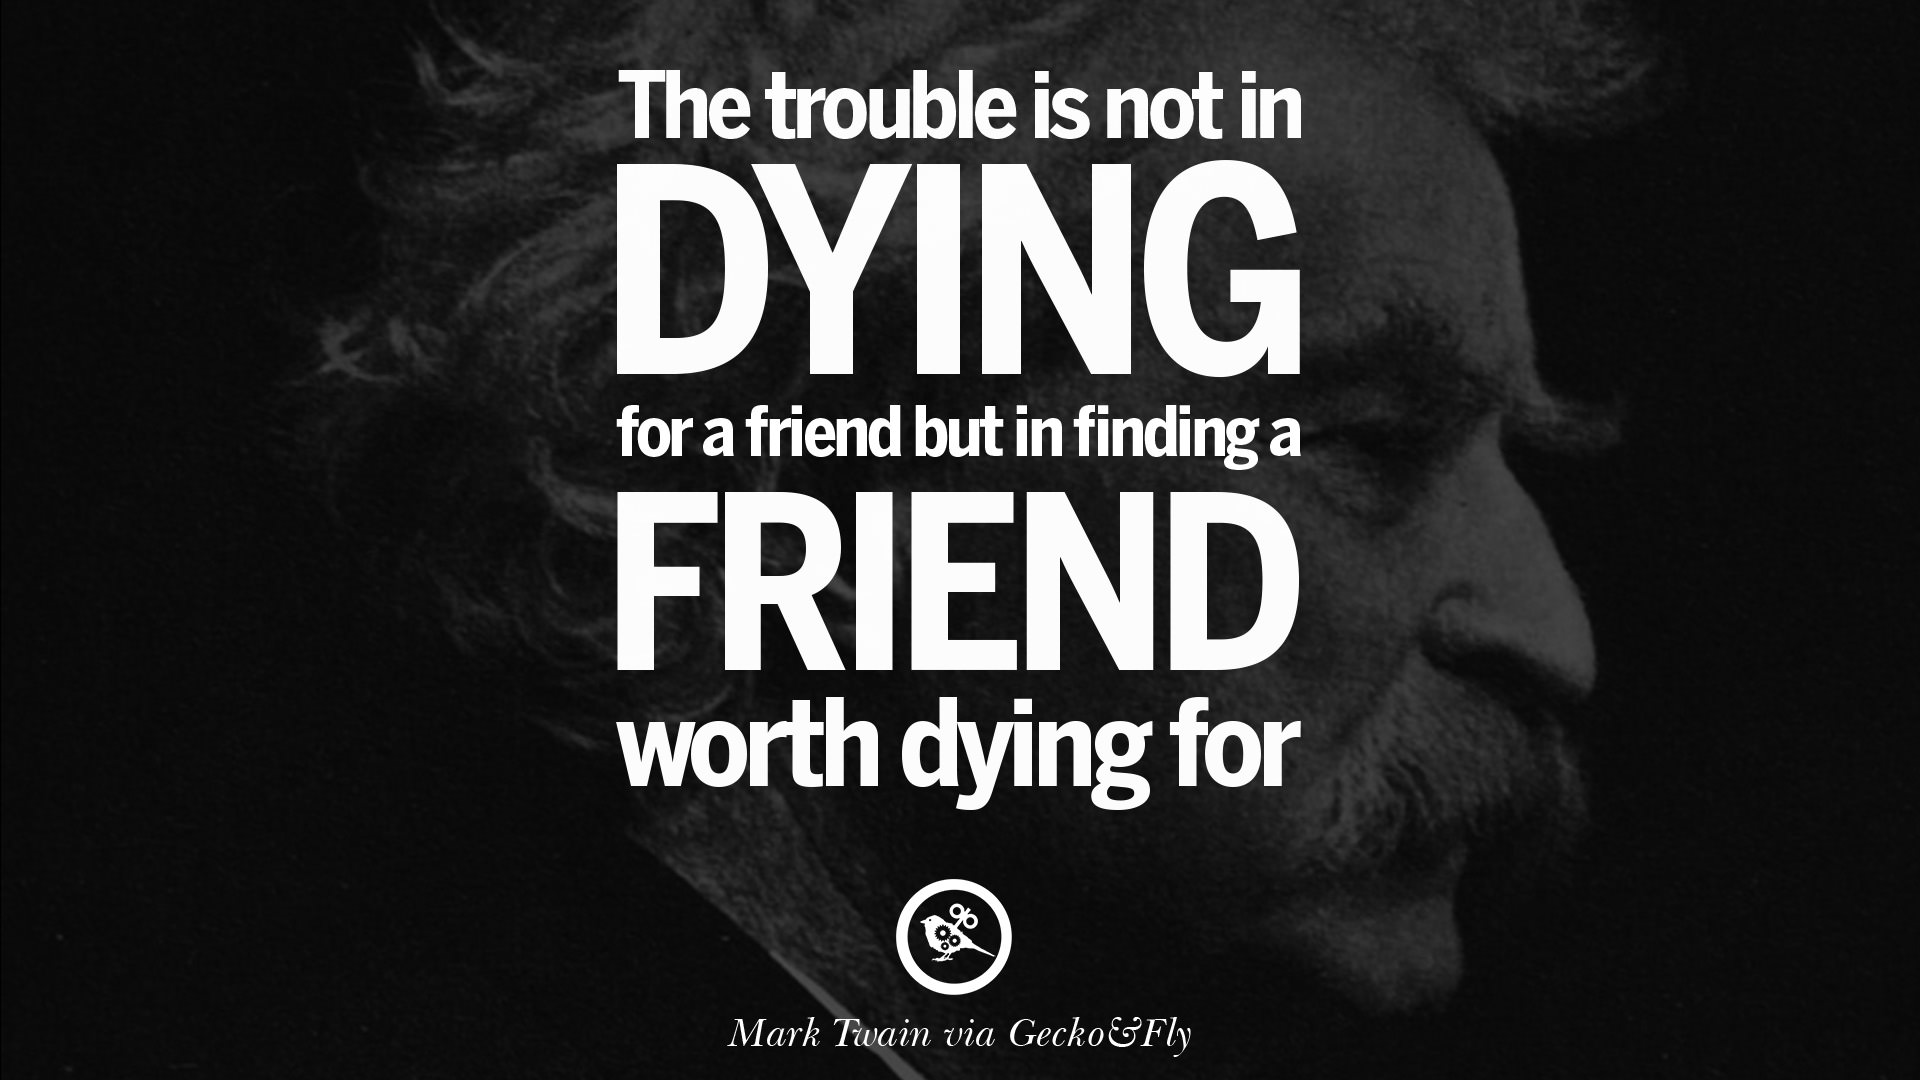 Wise Quotes 18 Wise Quotesmark Twain On Wisdom Human Nature Life And